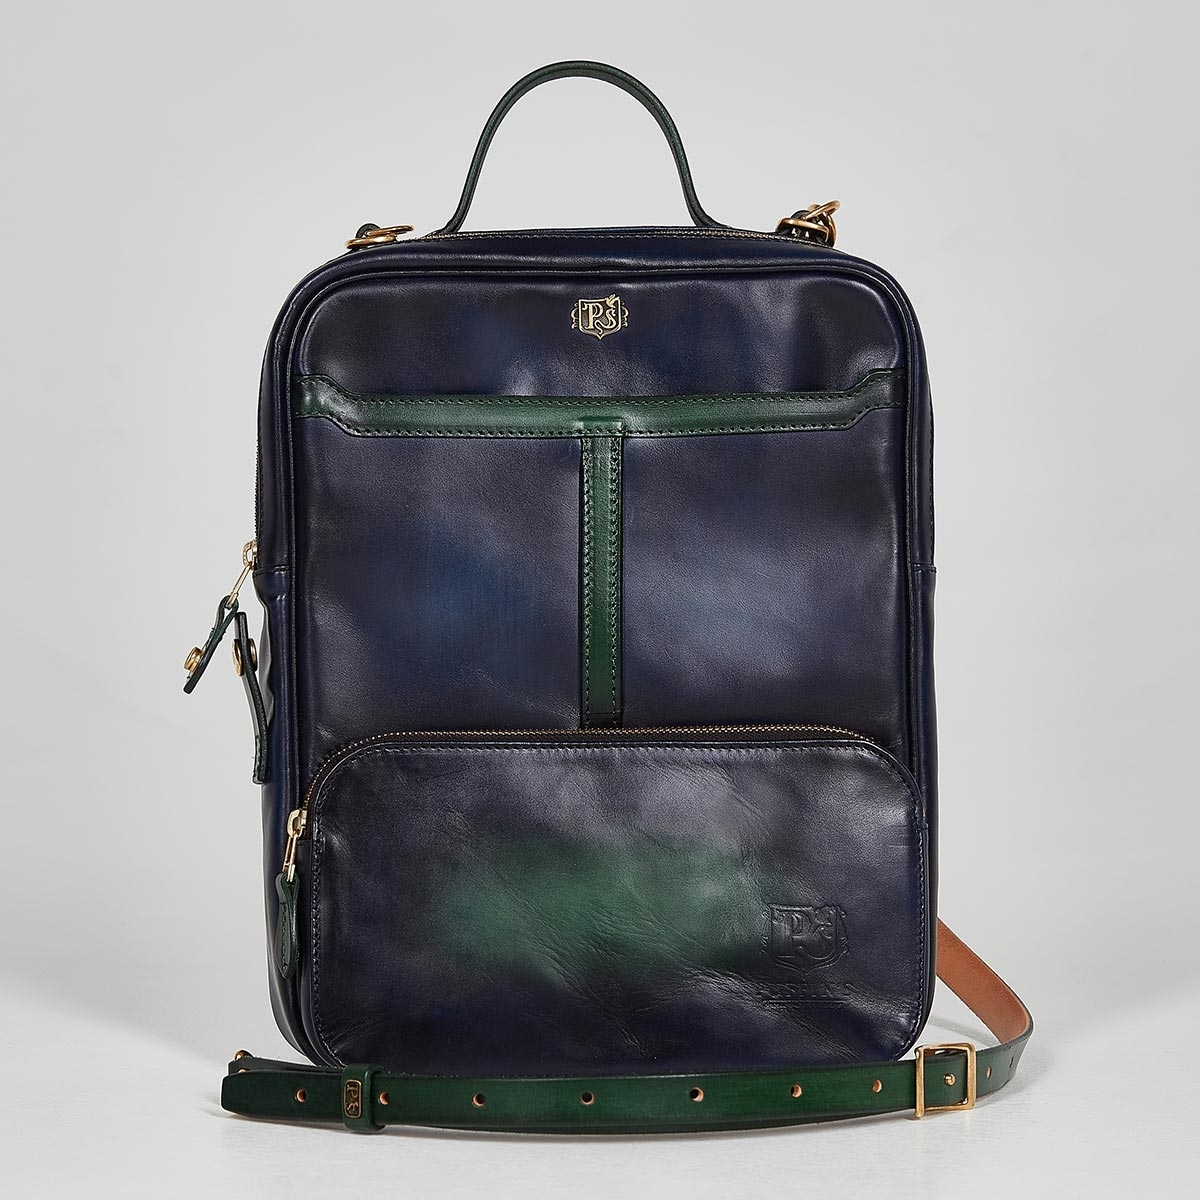 Crossbody bag-transformer CHELSEA grassy green & midnight blue